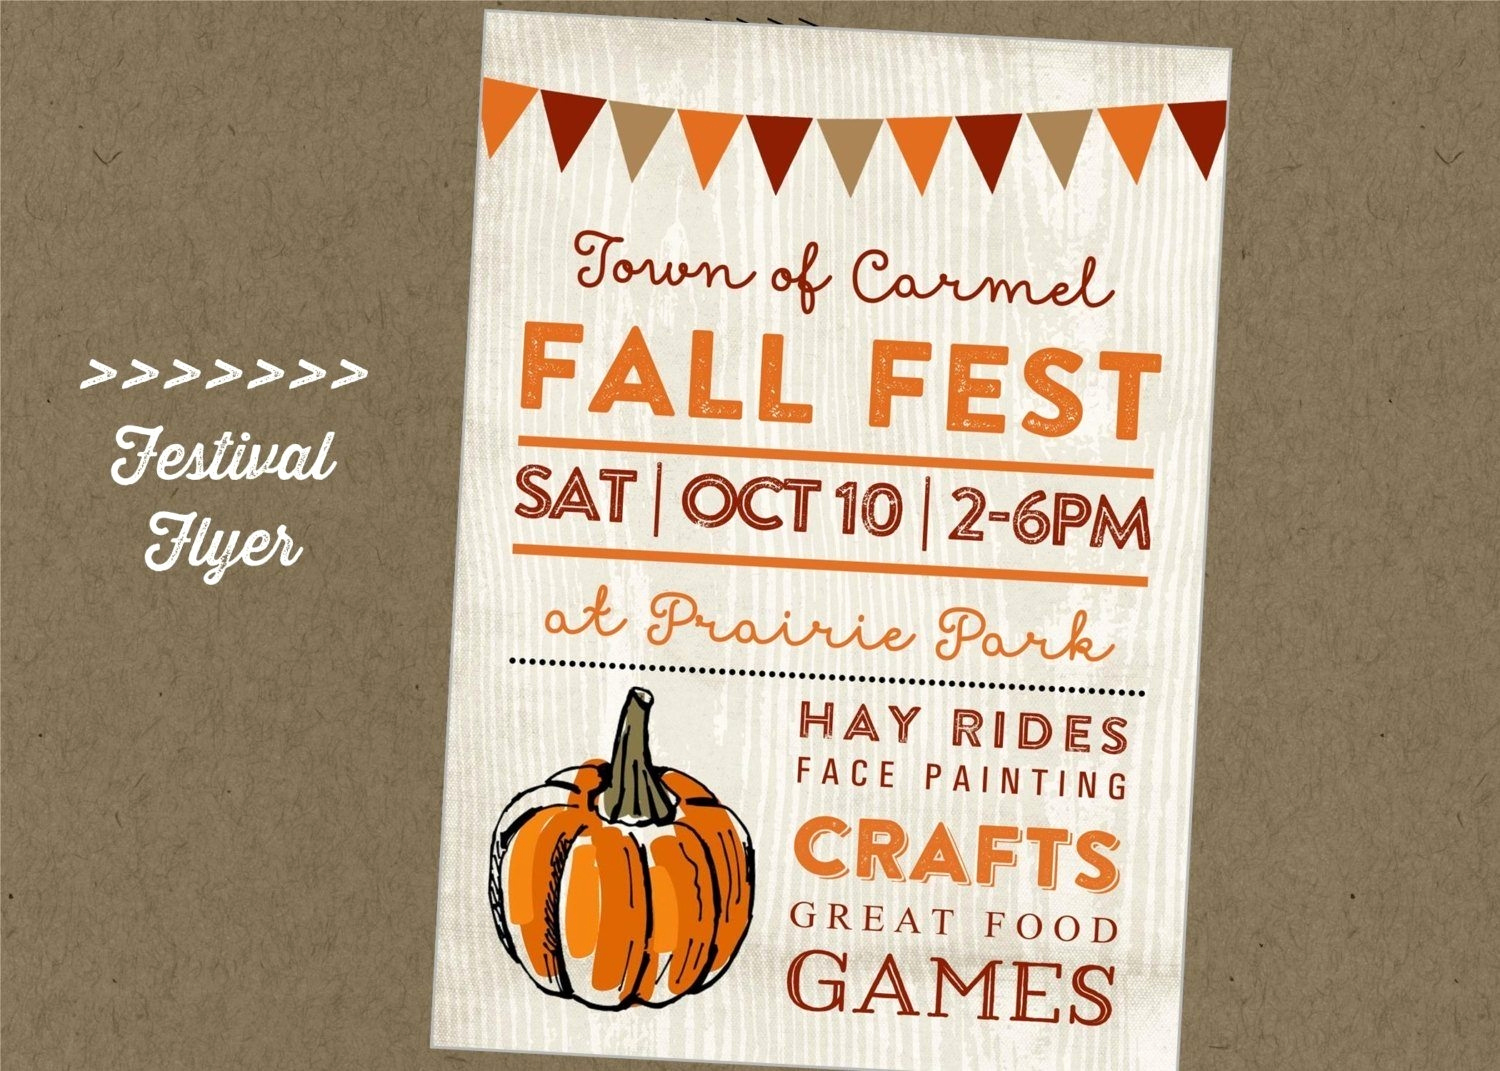 008 Fall Festival Flyer Templates Free Template Ideas Inspirational - Free Printable Fall Festival Flyer Templates